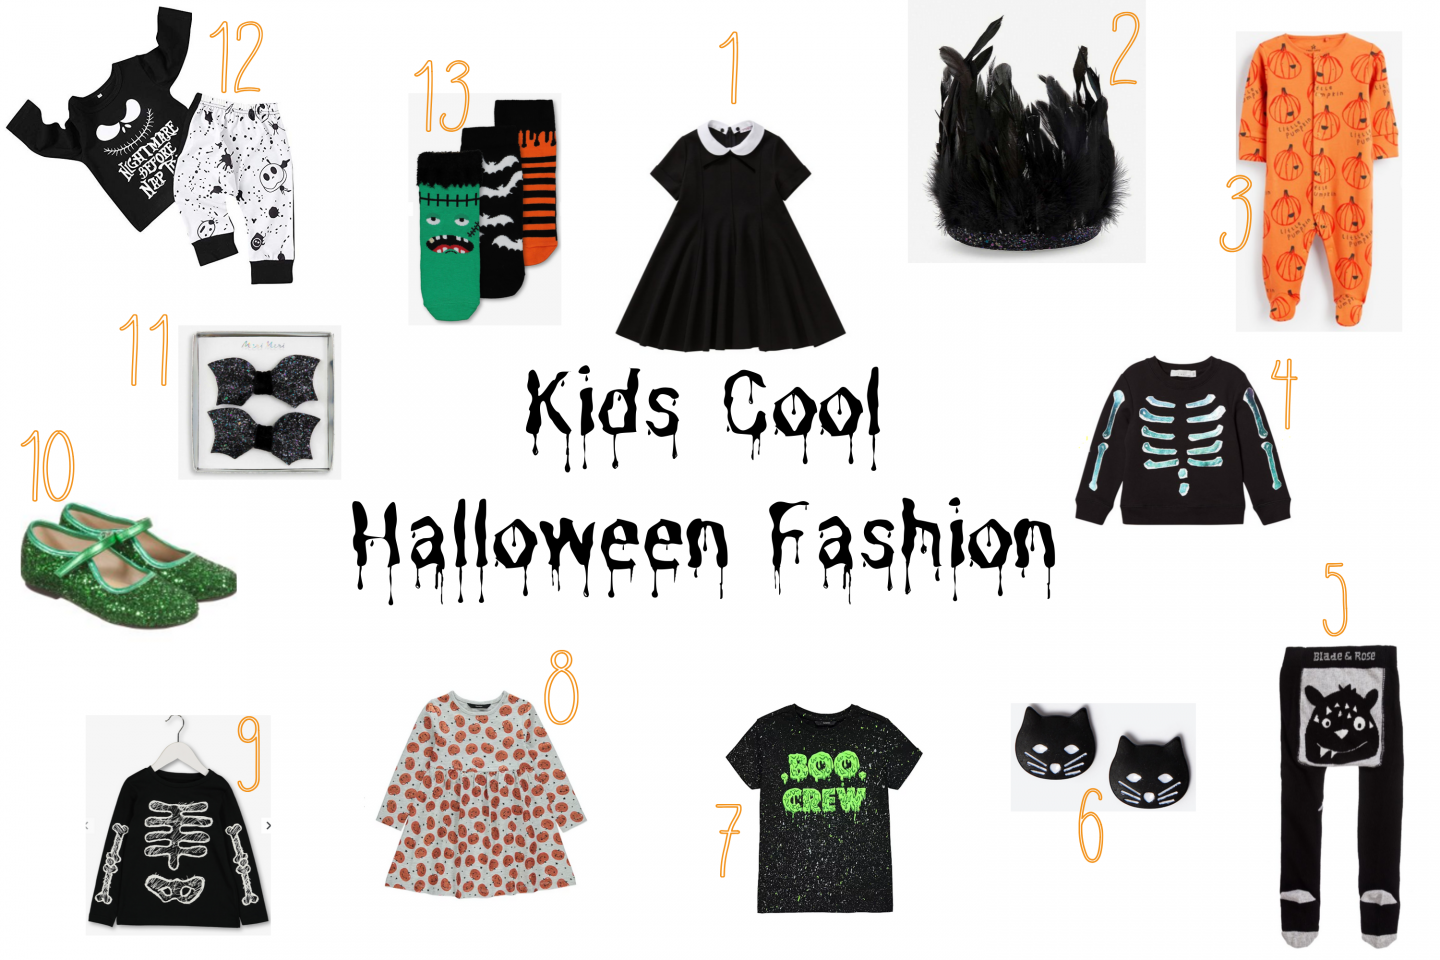 Kids Cool Halloween Fashion